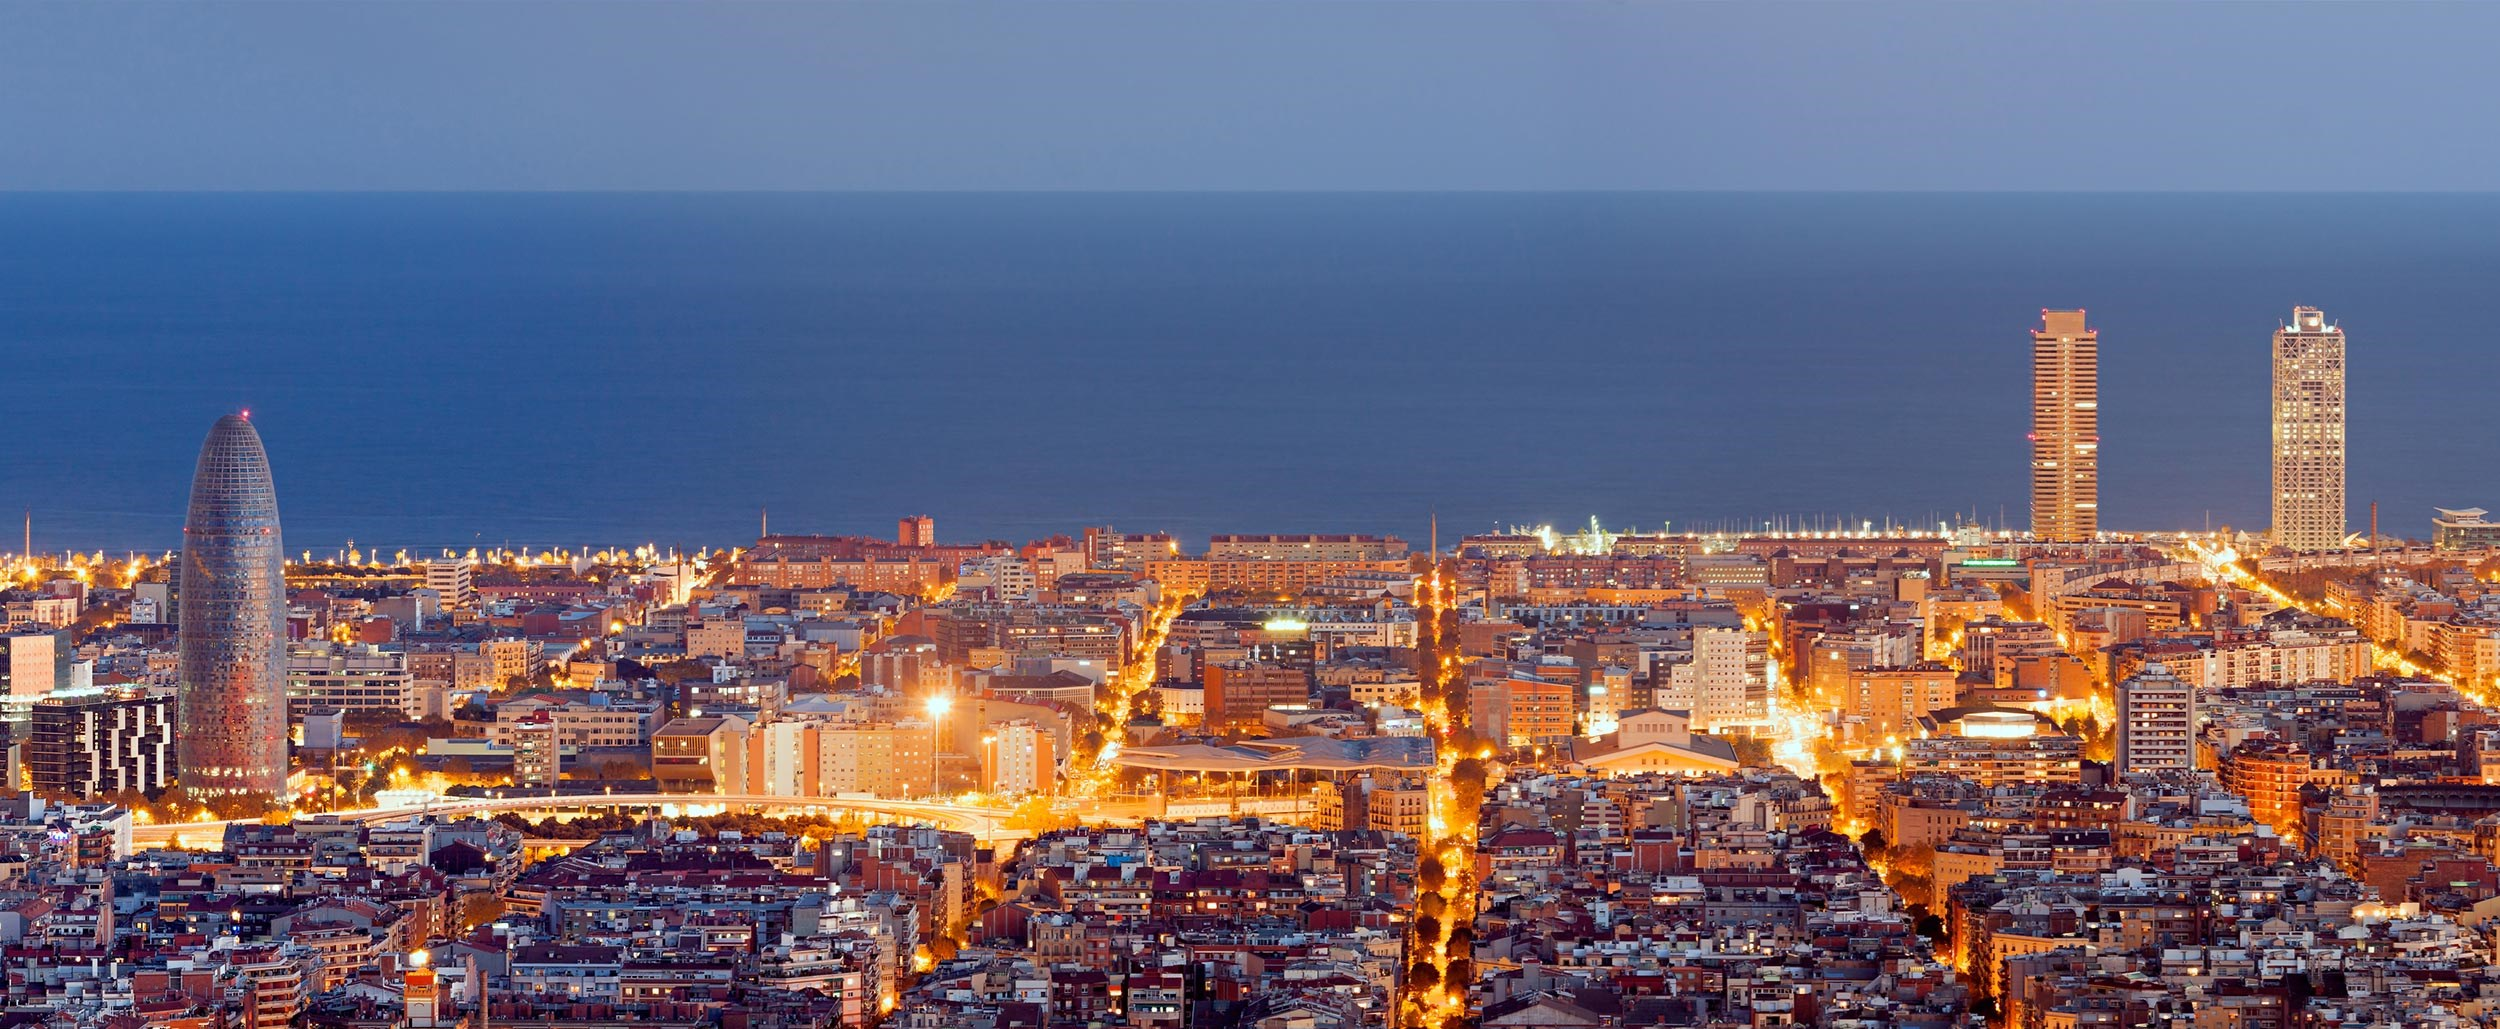 Barcelona with light